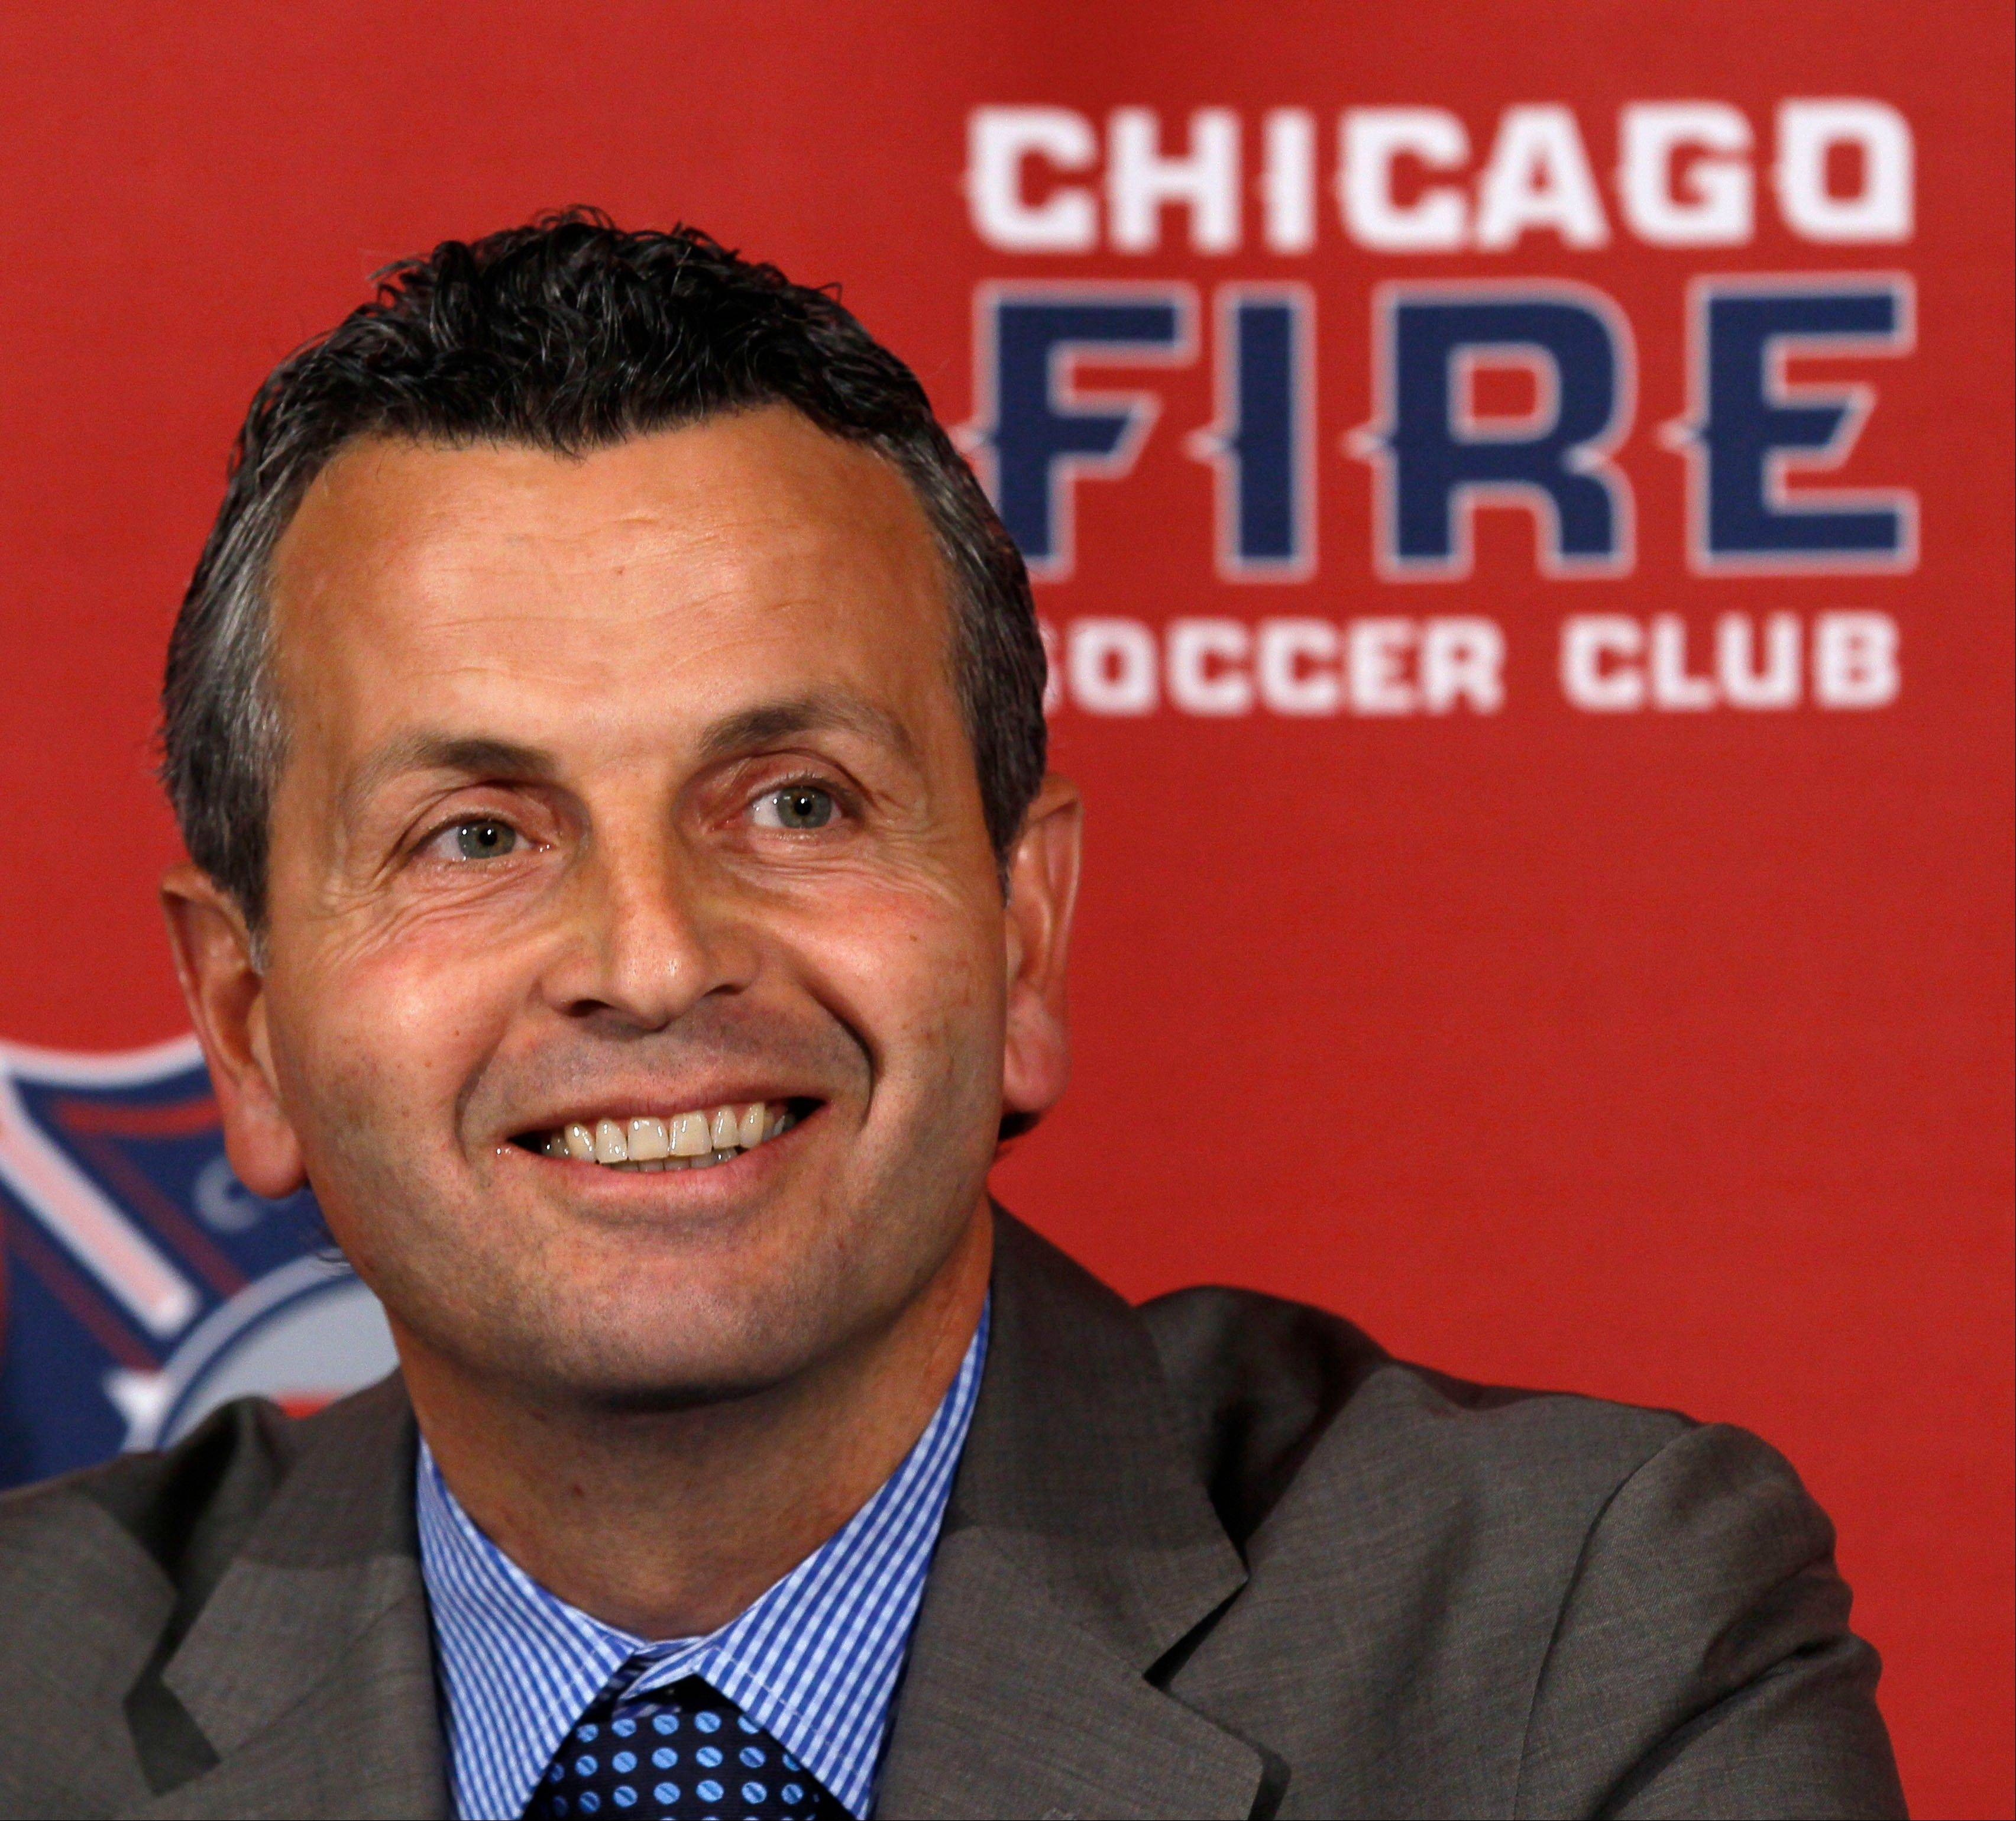 Frank Klopas smiles after being named head coach of the Chicago Fire MLS soccer team during a news conference at Toyota Park, Thursday, Nov. 3, 2011, in Bridgeview, Ill. Klopas was picked as the Fire's head coach on Thursday, five months after he got the job on an interim basis when the Major League Soccer club got off to a bad start. (AP Photo/Charles Rex Arbogast)